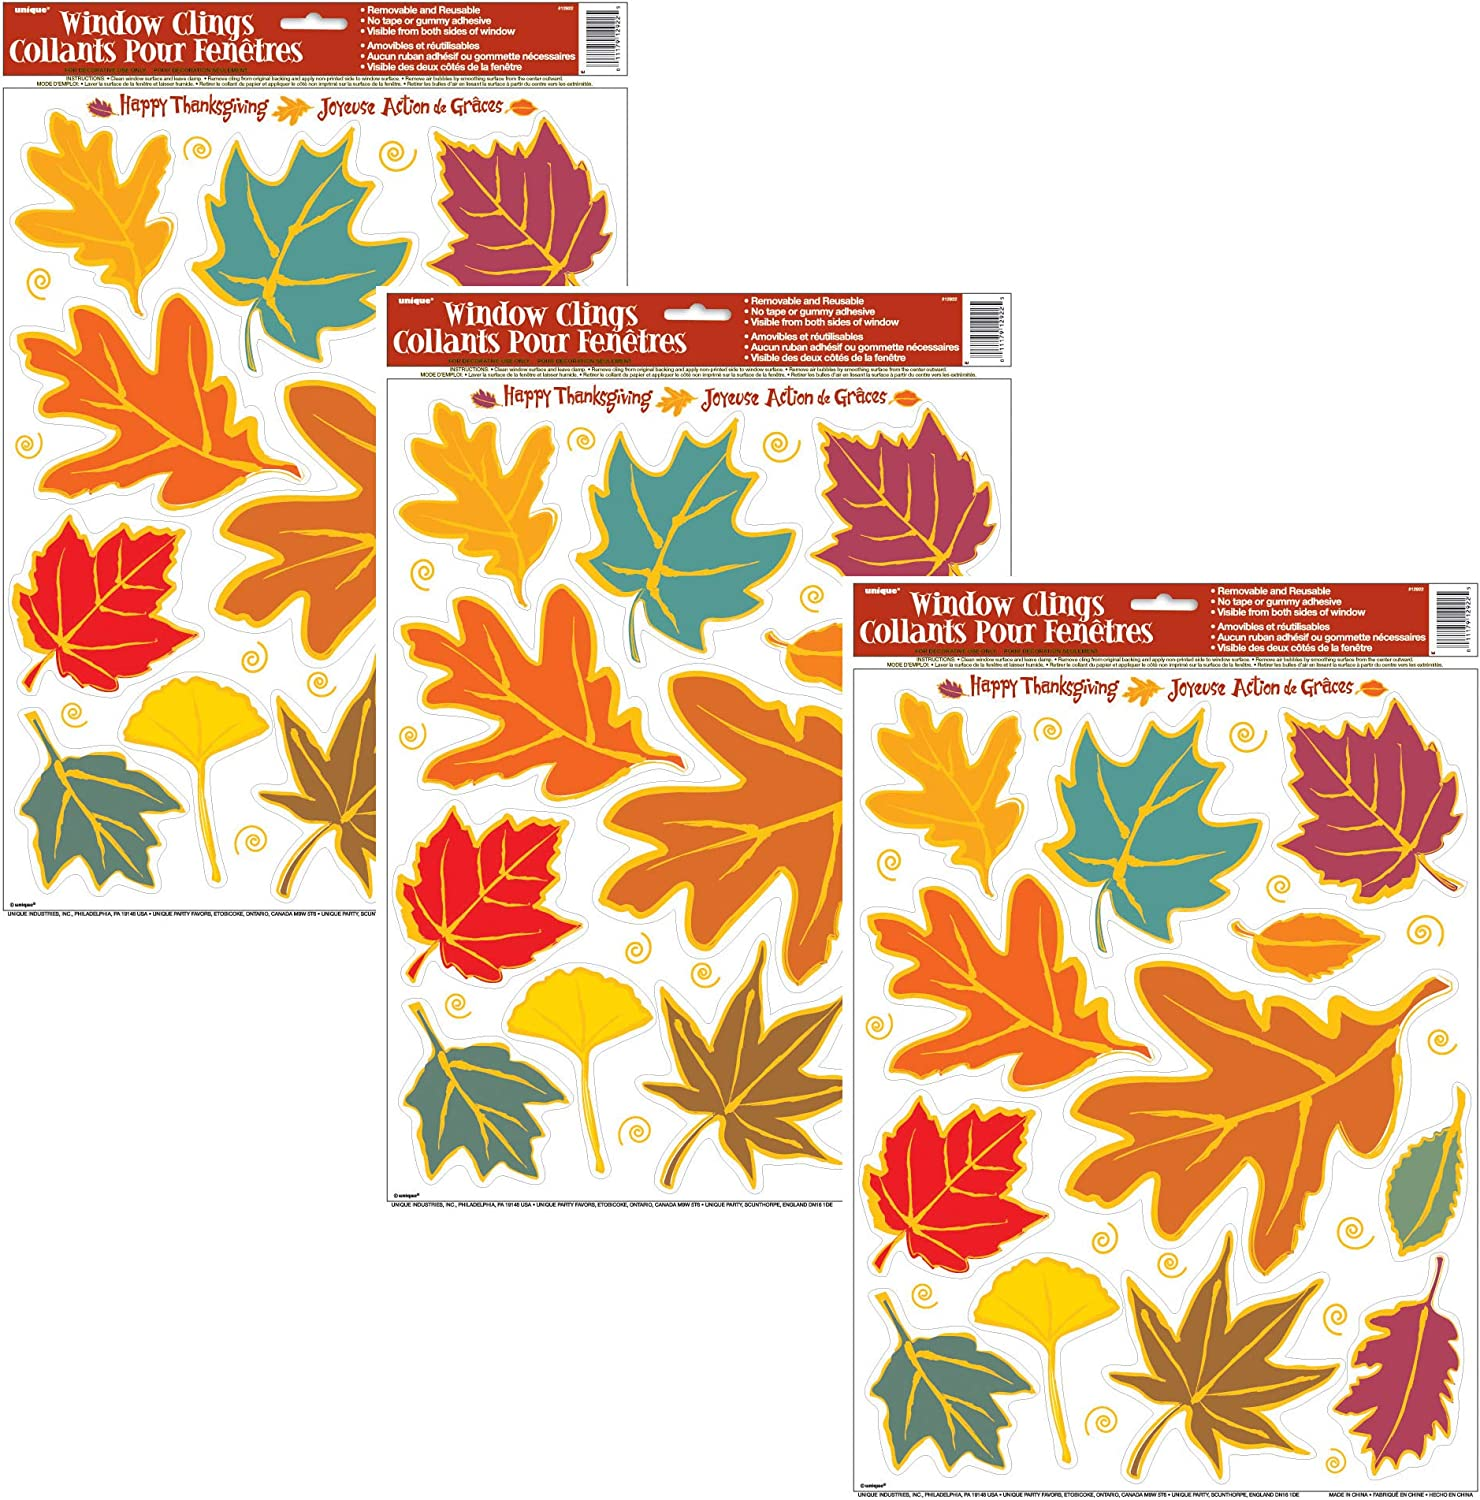 Unique Falling Fall Leaves Window Clings   3-Pack   Autumn, Fall, Thanksgiving Wall and Floor Adhesive Decorations